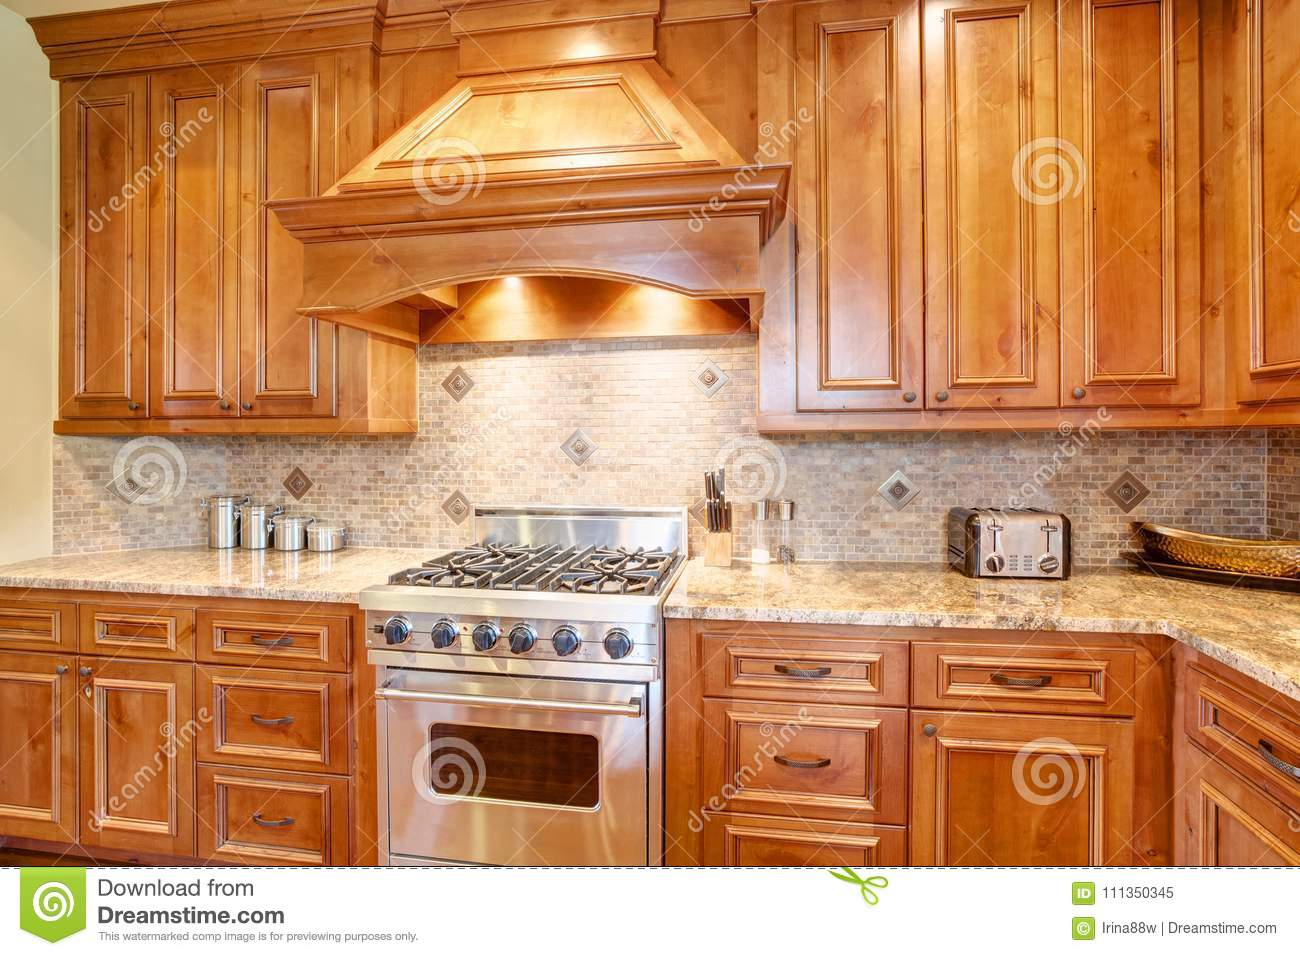 Gourmet Kitchen Boasts A Curved Kitchen Hood Stock Image Image Of Hardwood Architecture 111350345